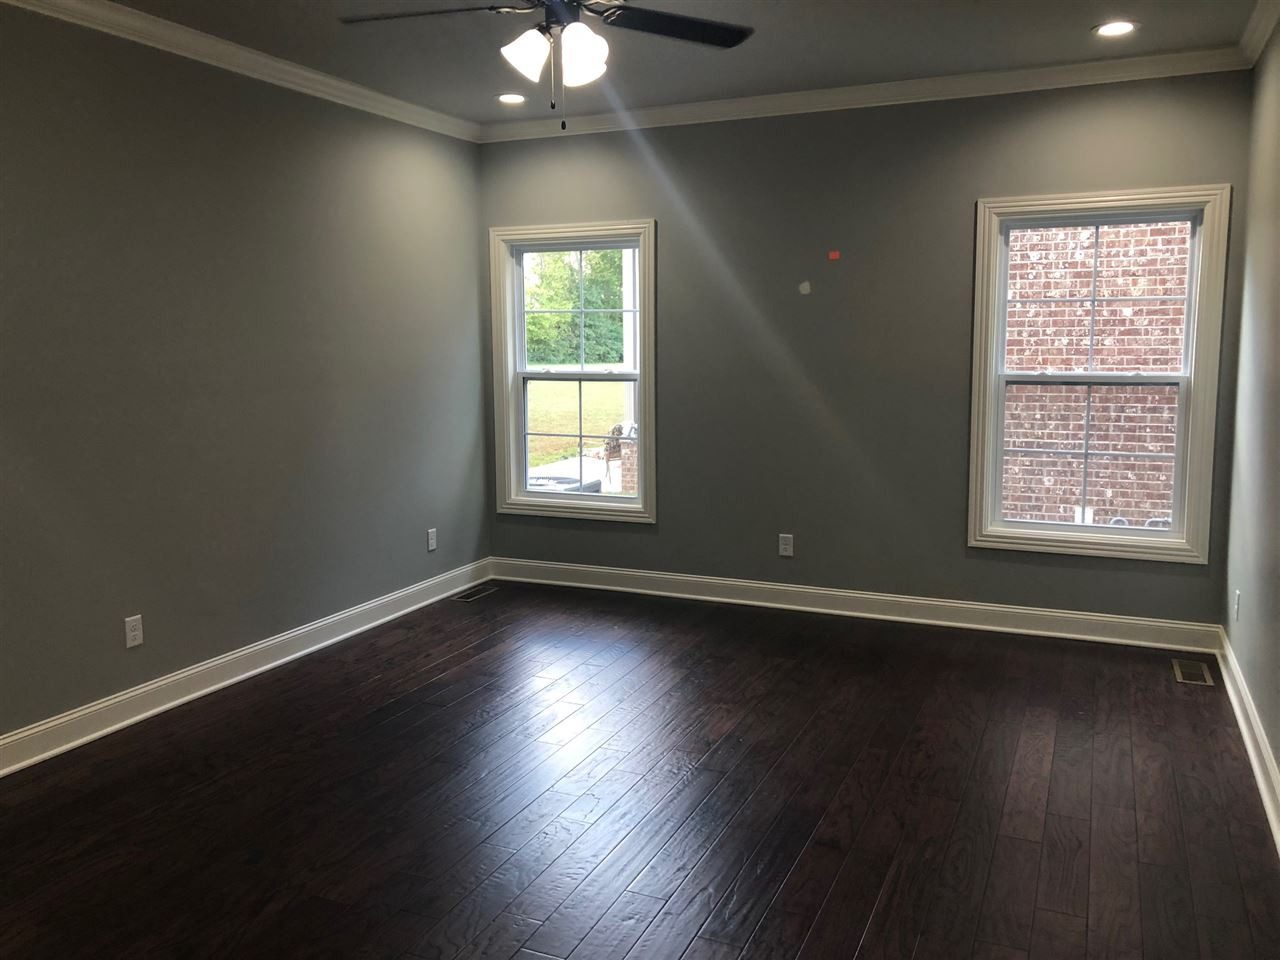 hardwood flooring bowling green ky of 737 sherwood dr bowling green ky 42103 realestate com in ismm3ska0iwy2m1000000000